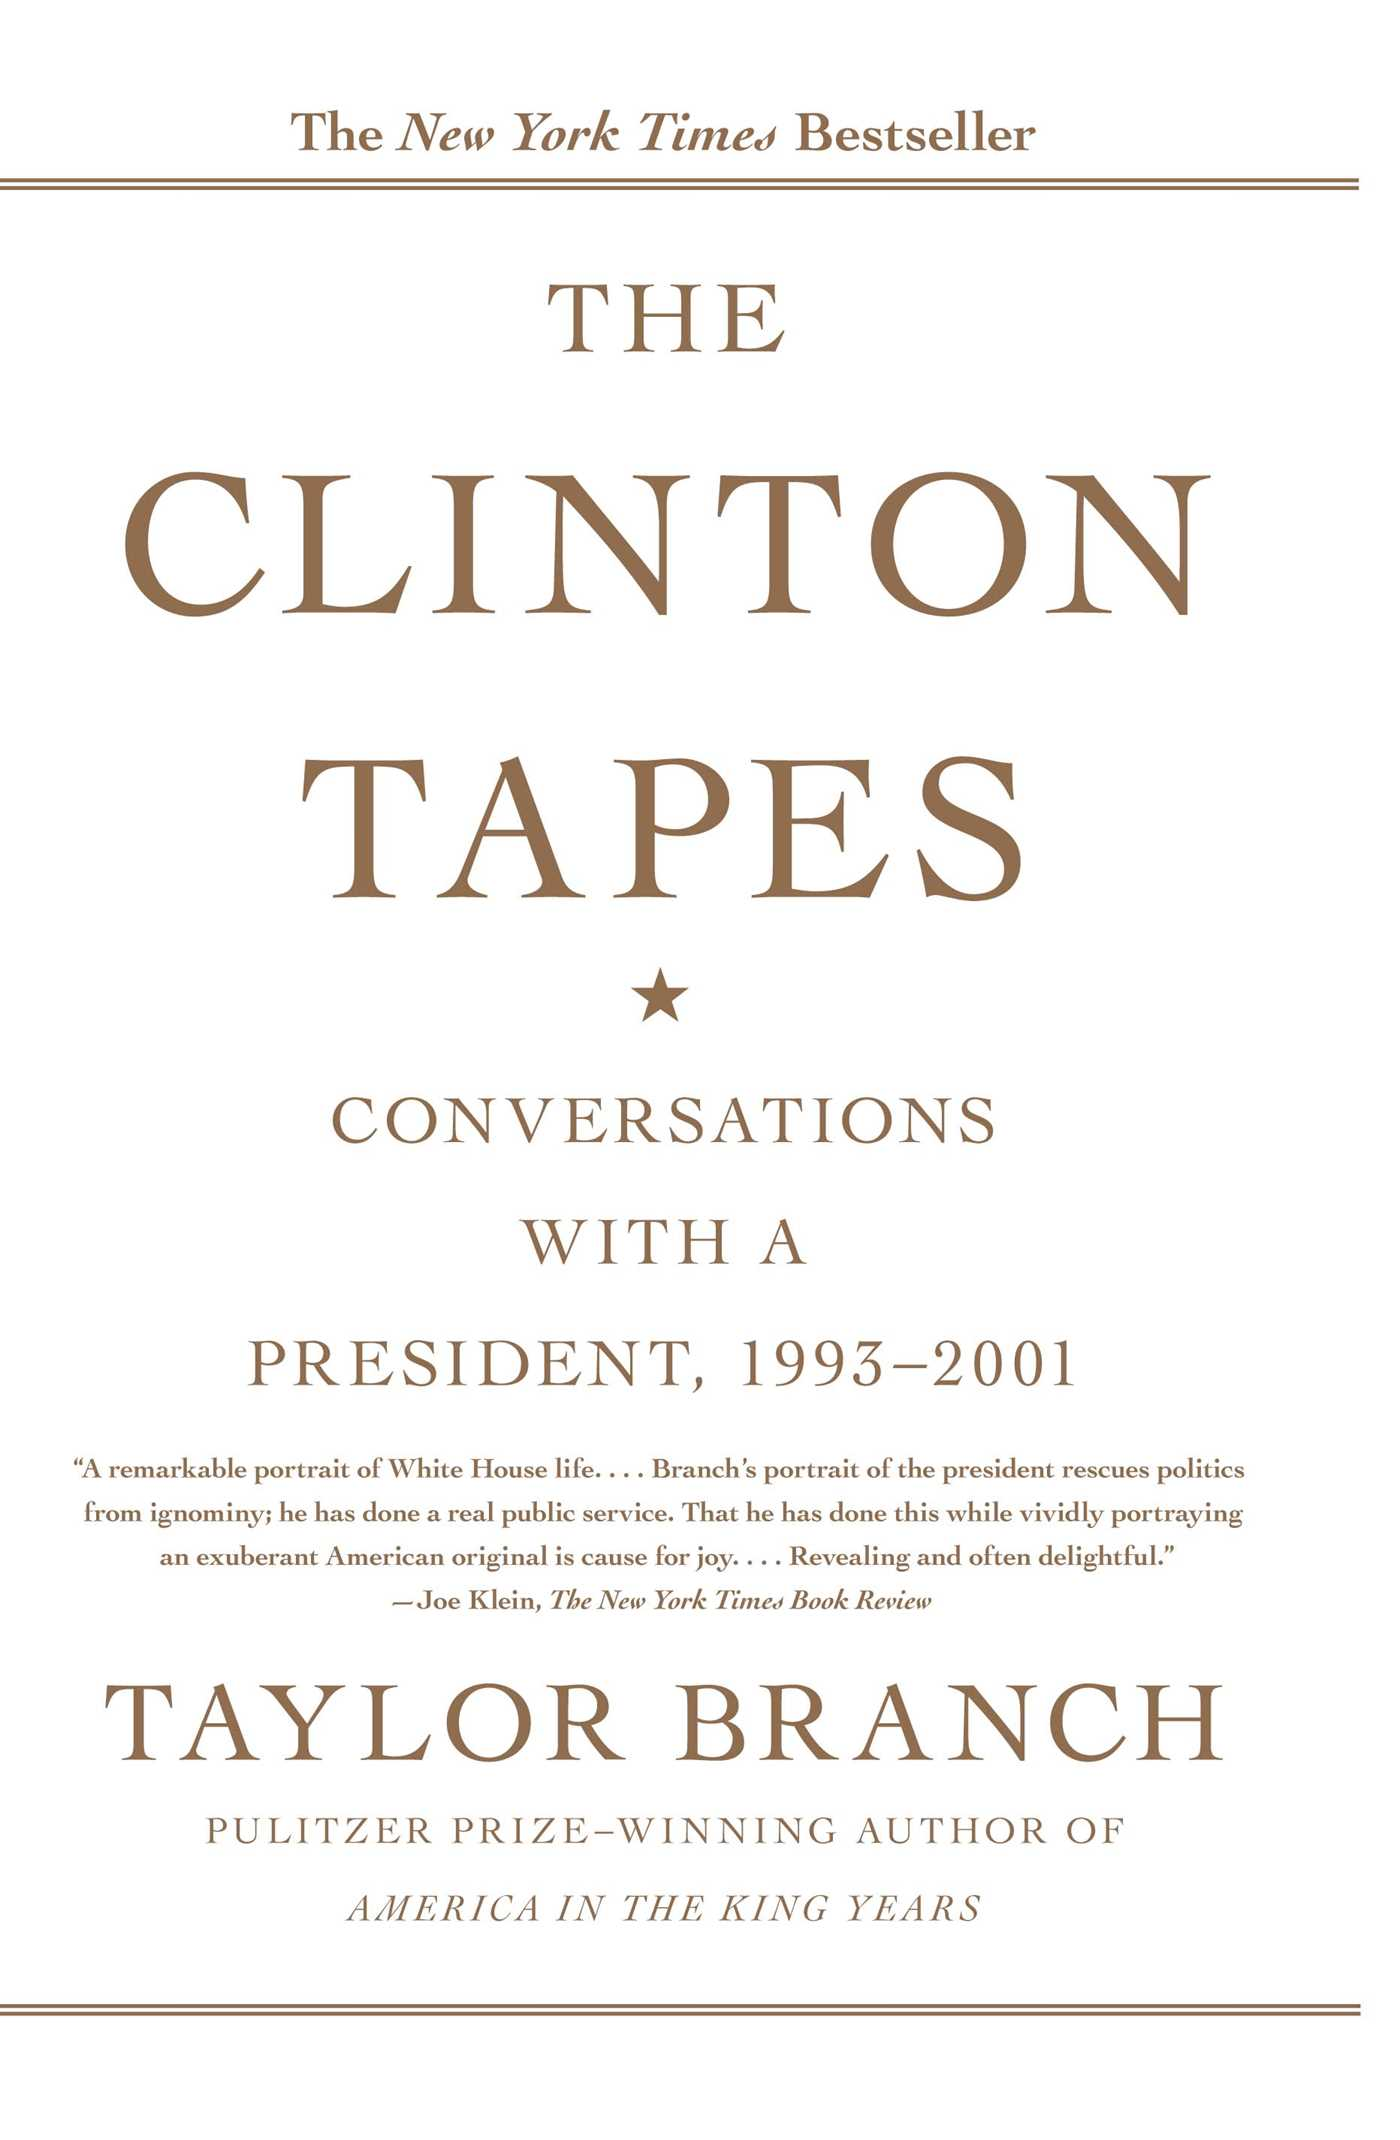 Clinton-tapes-9781416543343_hr